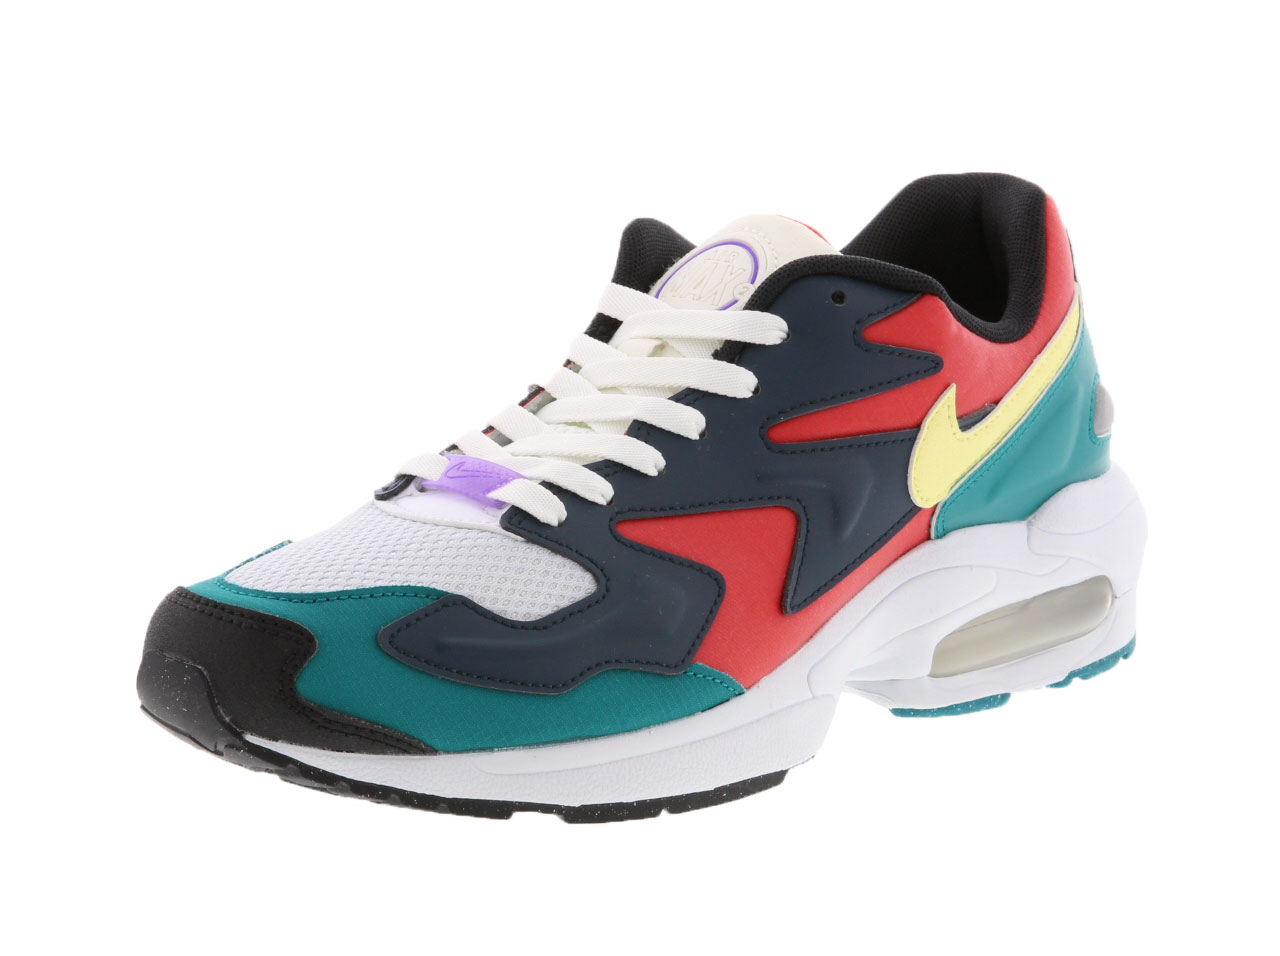 【SALE】NIKE AIR MAX2 LIGHT SP - HABANERO RED/ARMORY NAVY-RADIANT EMERALD-SAIL-LEMON CHIFFON